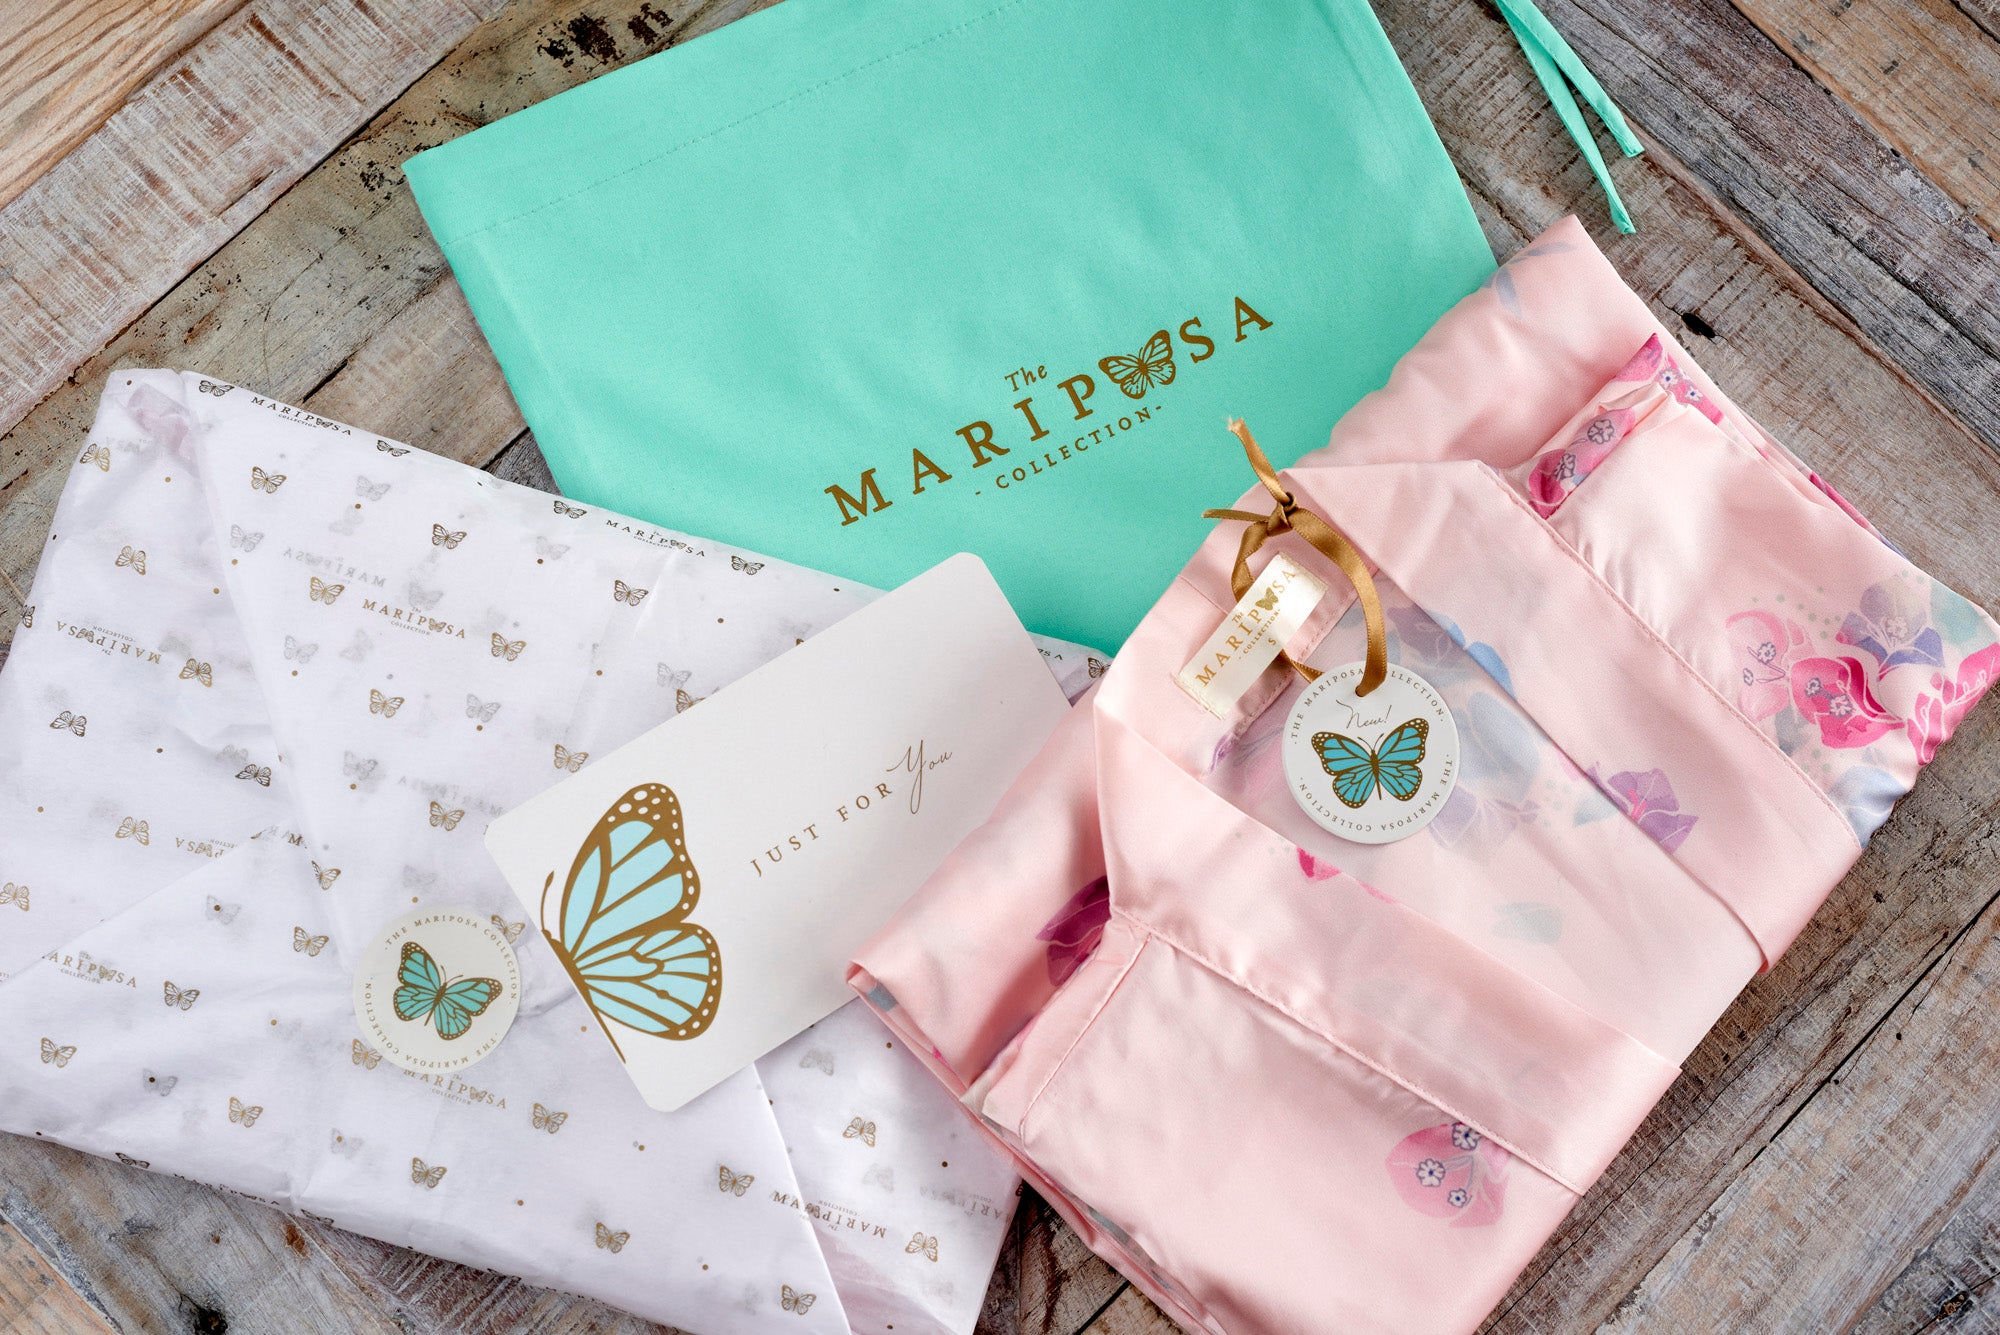 Blushing Bougainvillea (Short) - The Mariposa Collection